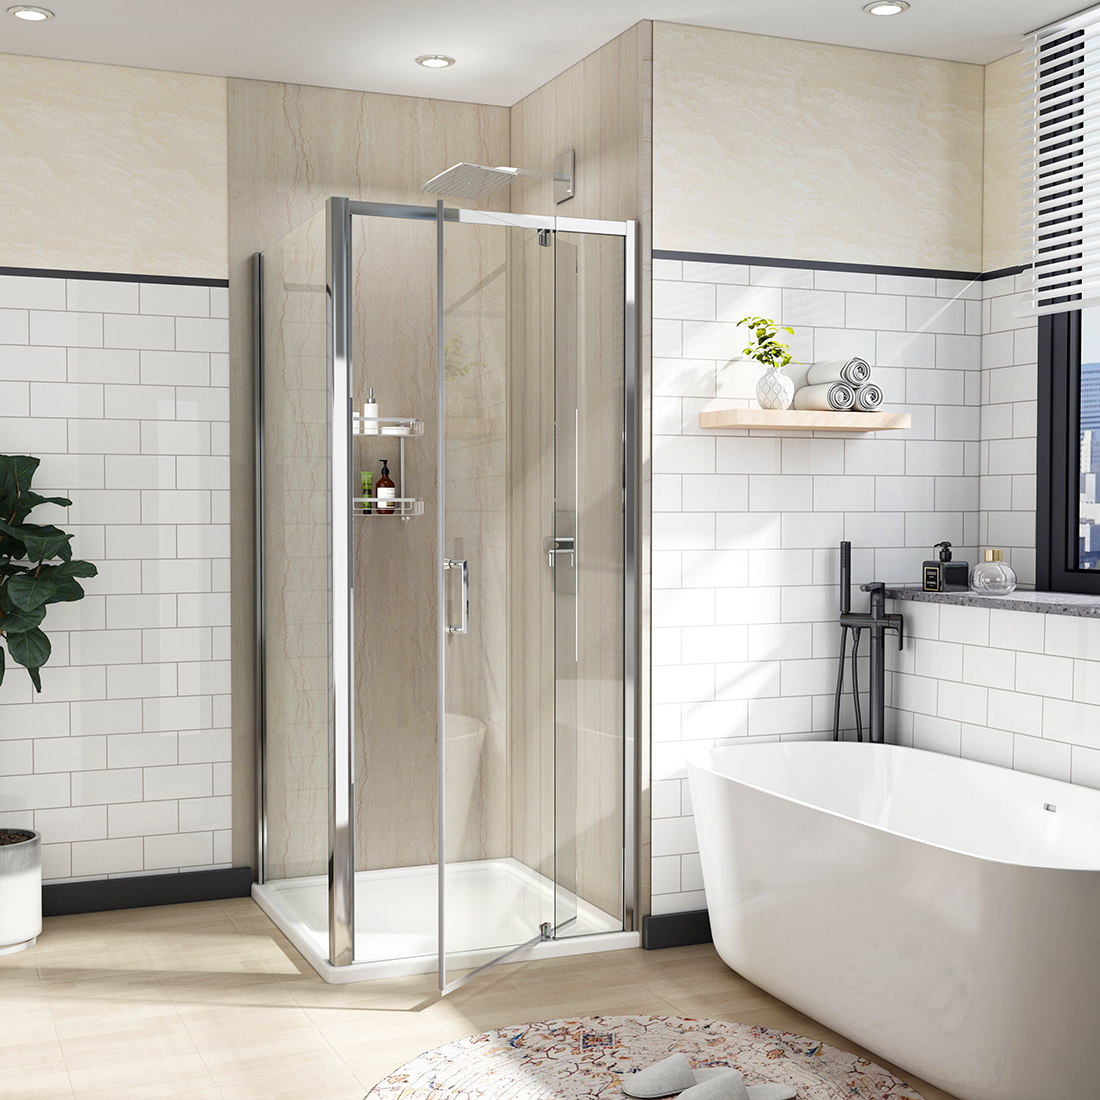 Details About 36 X 72 Framed Pivot Coner Shower Door Screen Enclosure 1 4 Clear Glass Chrome